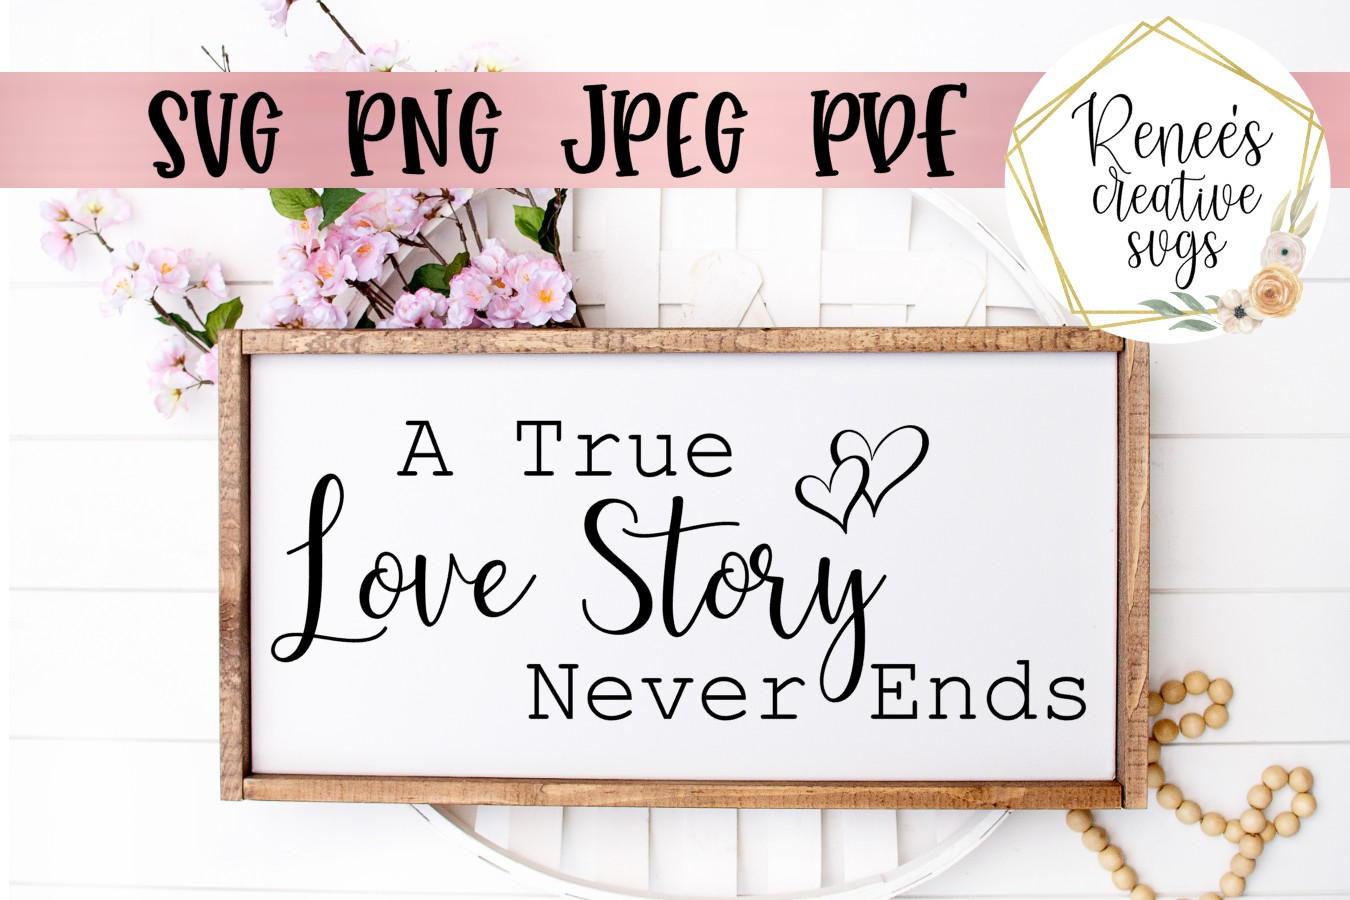 A true love story never ends Wedding Quotes   SVG Cut File example image 1